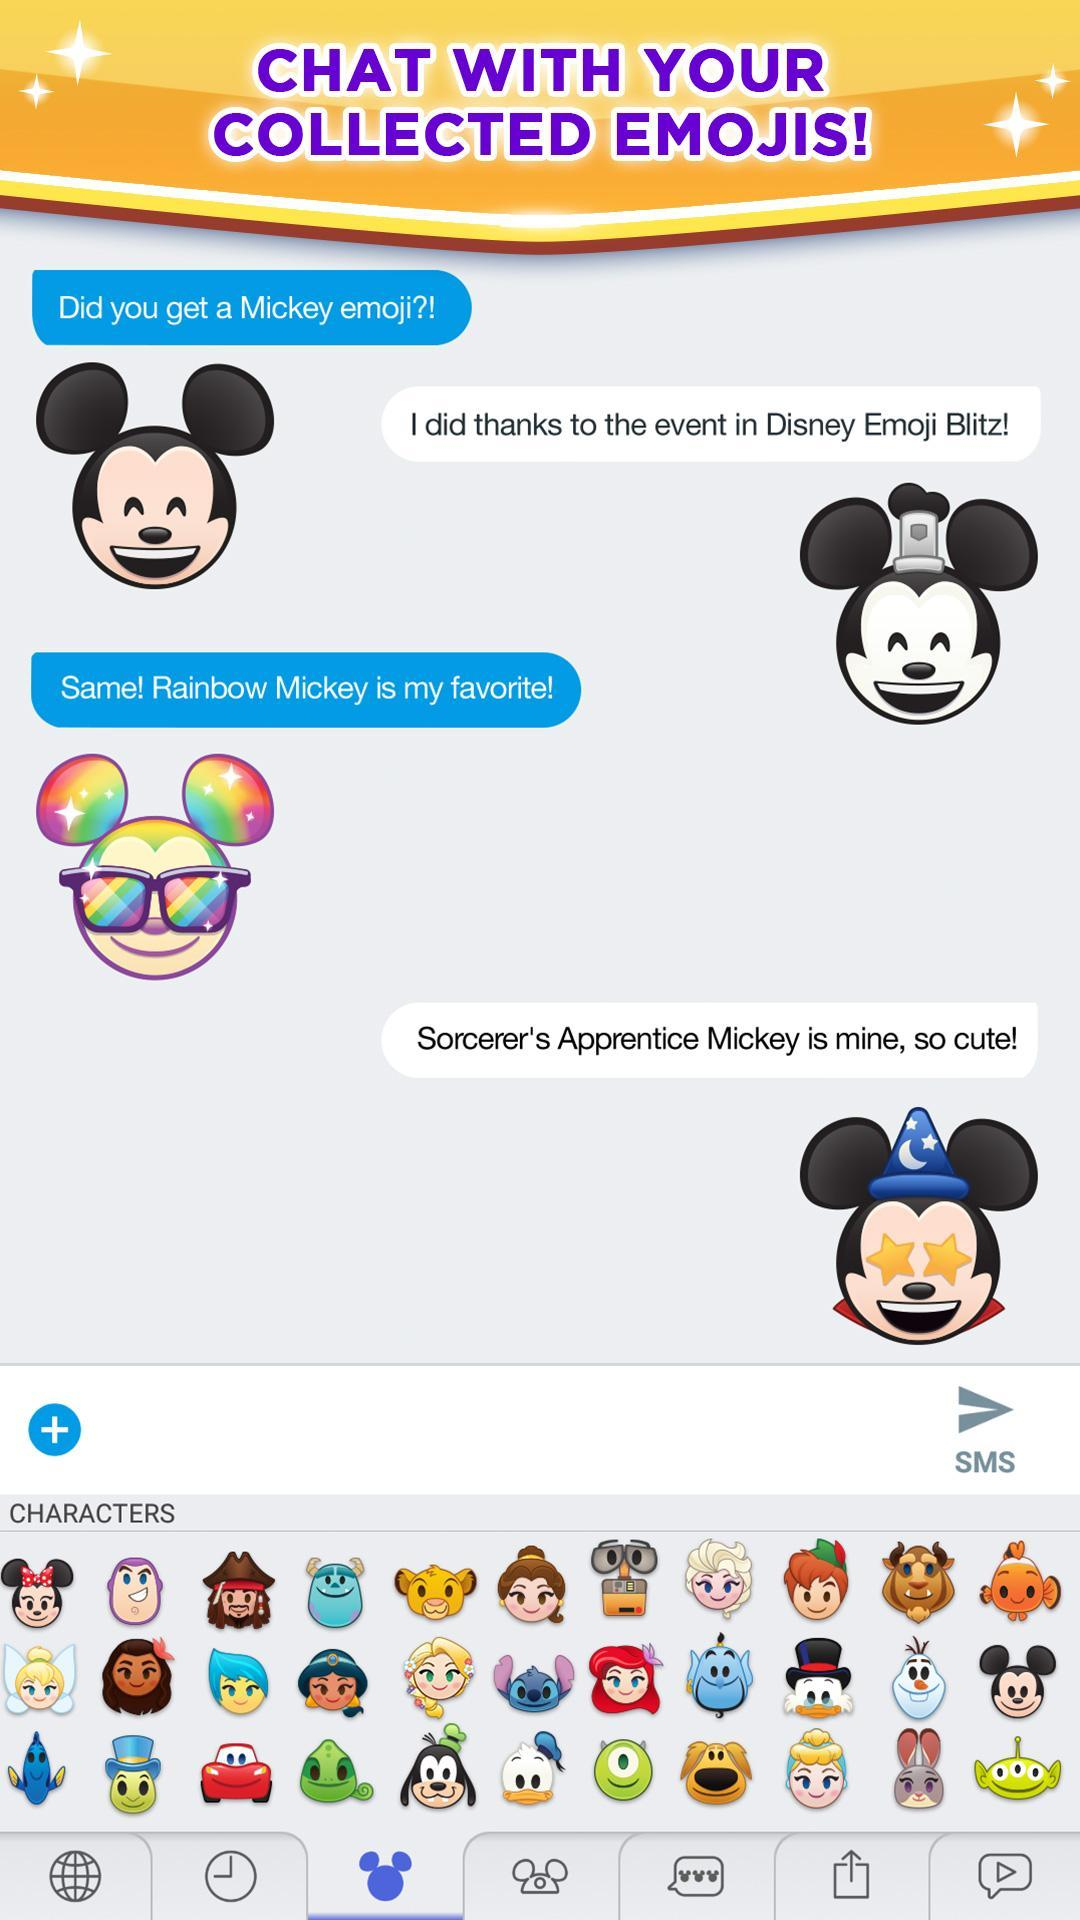 Disney Emoji Blitz For Android  Apk Download with regard to Emoji Blitz Events Calendar